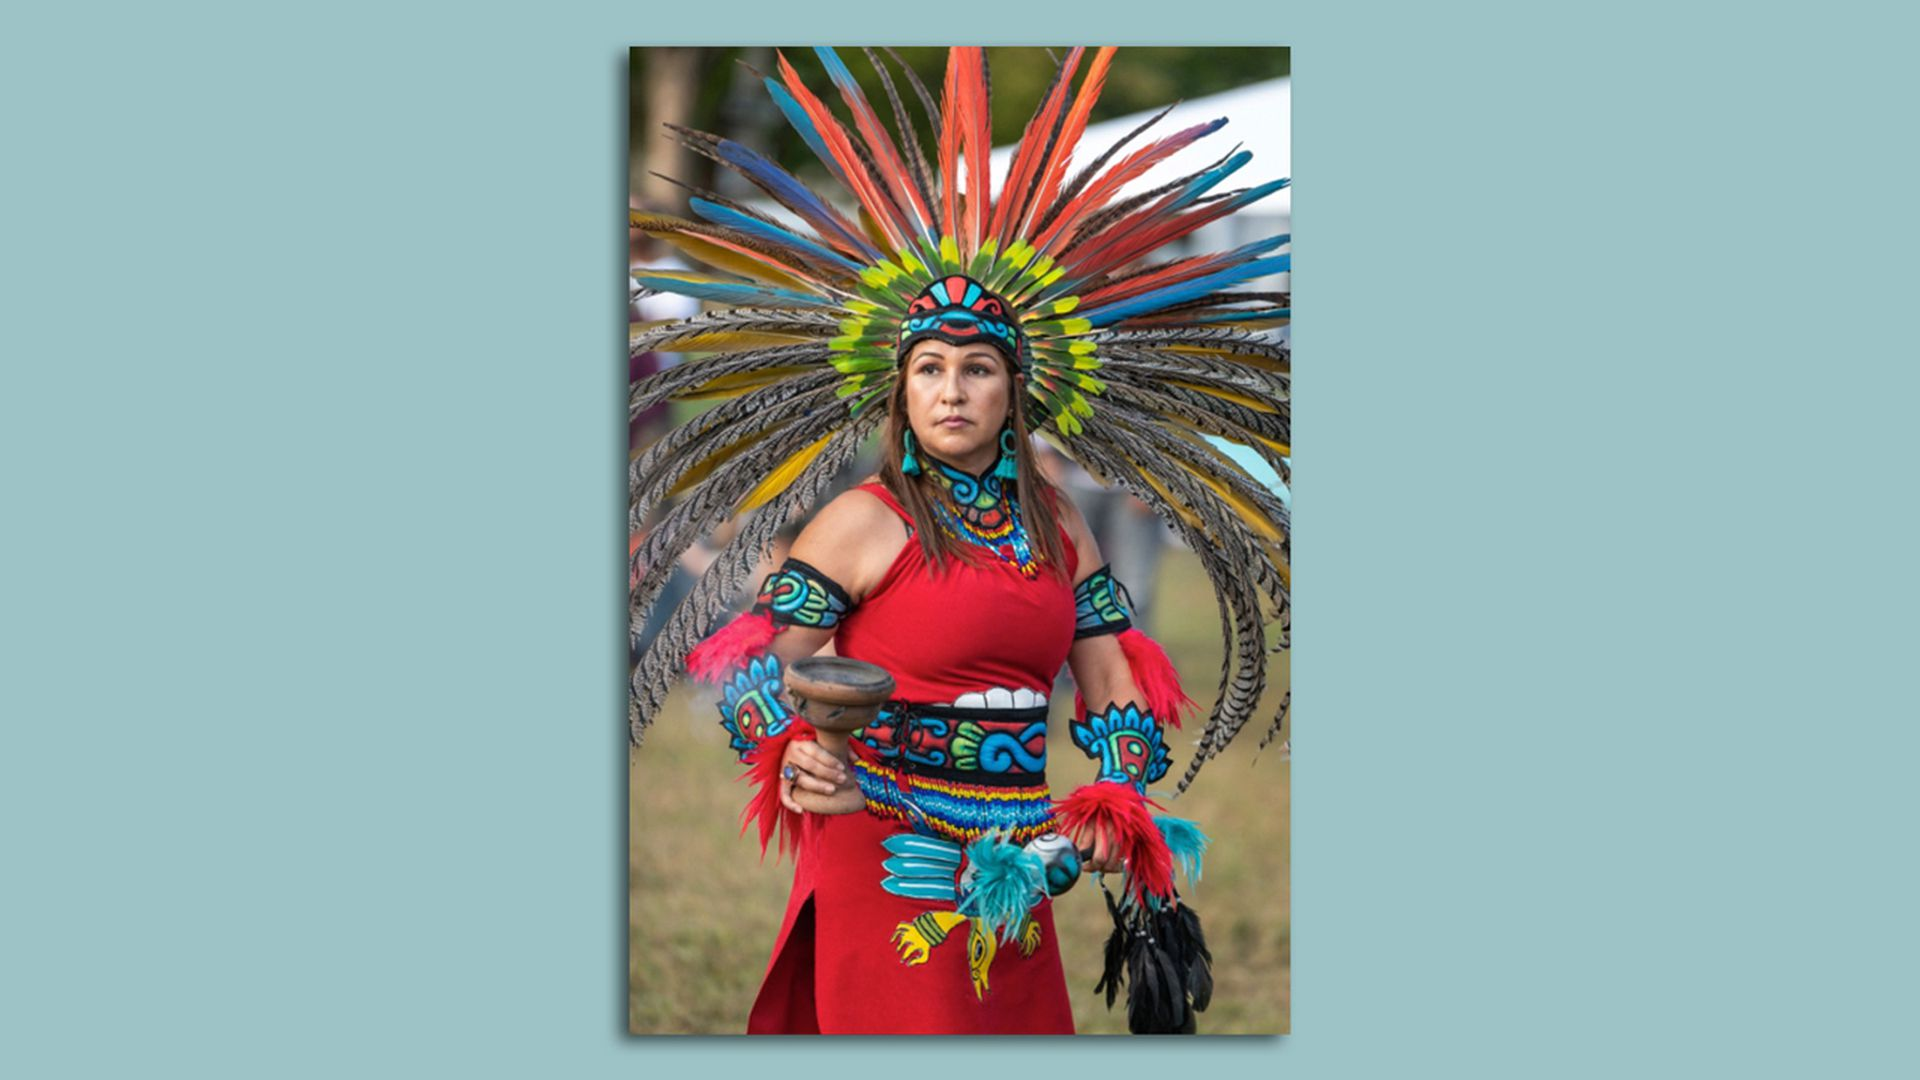 Campatlanezi (Danza Azteca del Anahuac) seen here during an event celebrating Indigenous Peoples' Day in 2019 at Penn Treaty Park. Photo courtesy of Indigenous Peoples' Day Philly Inc